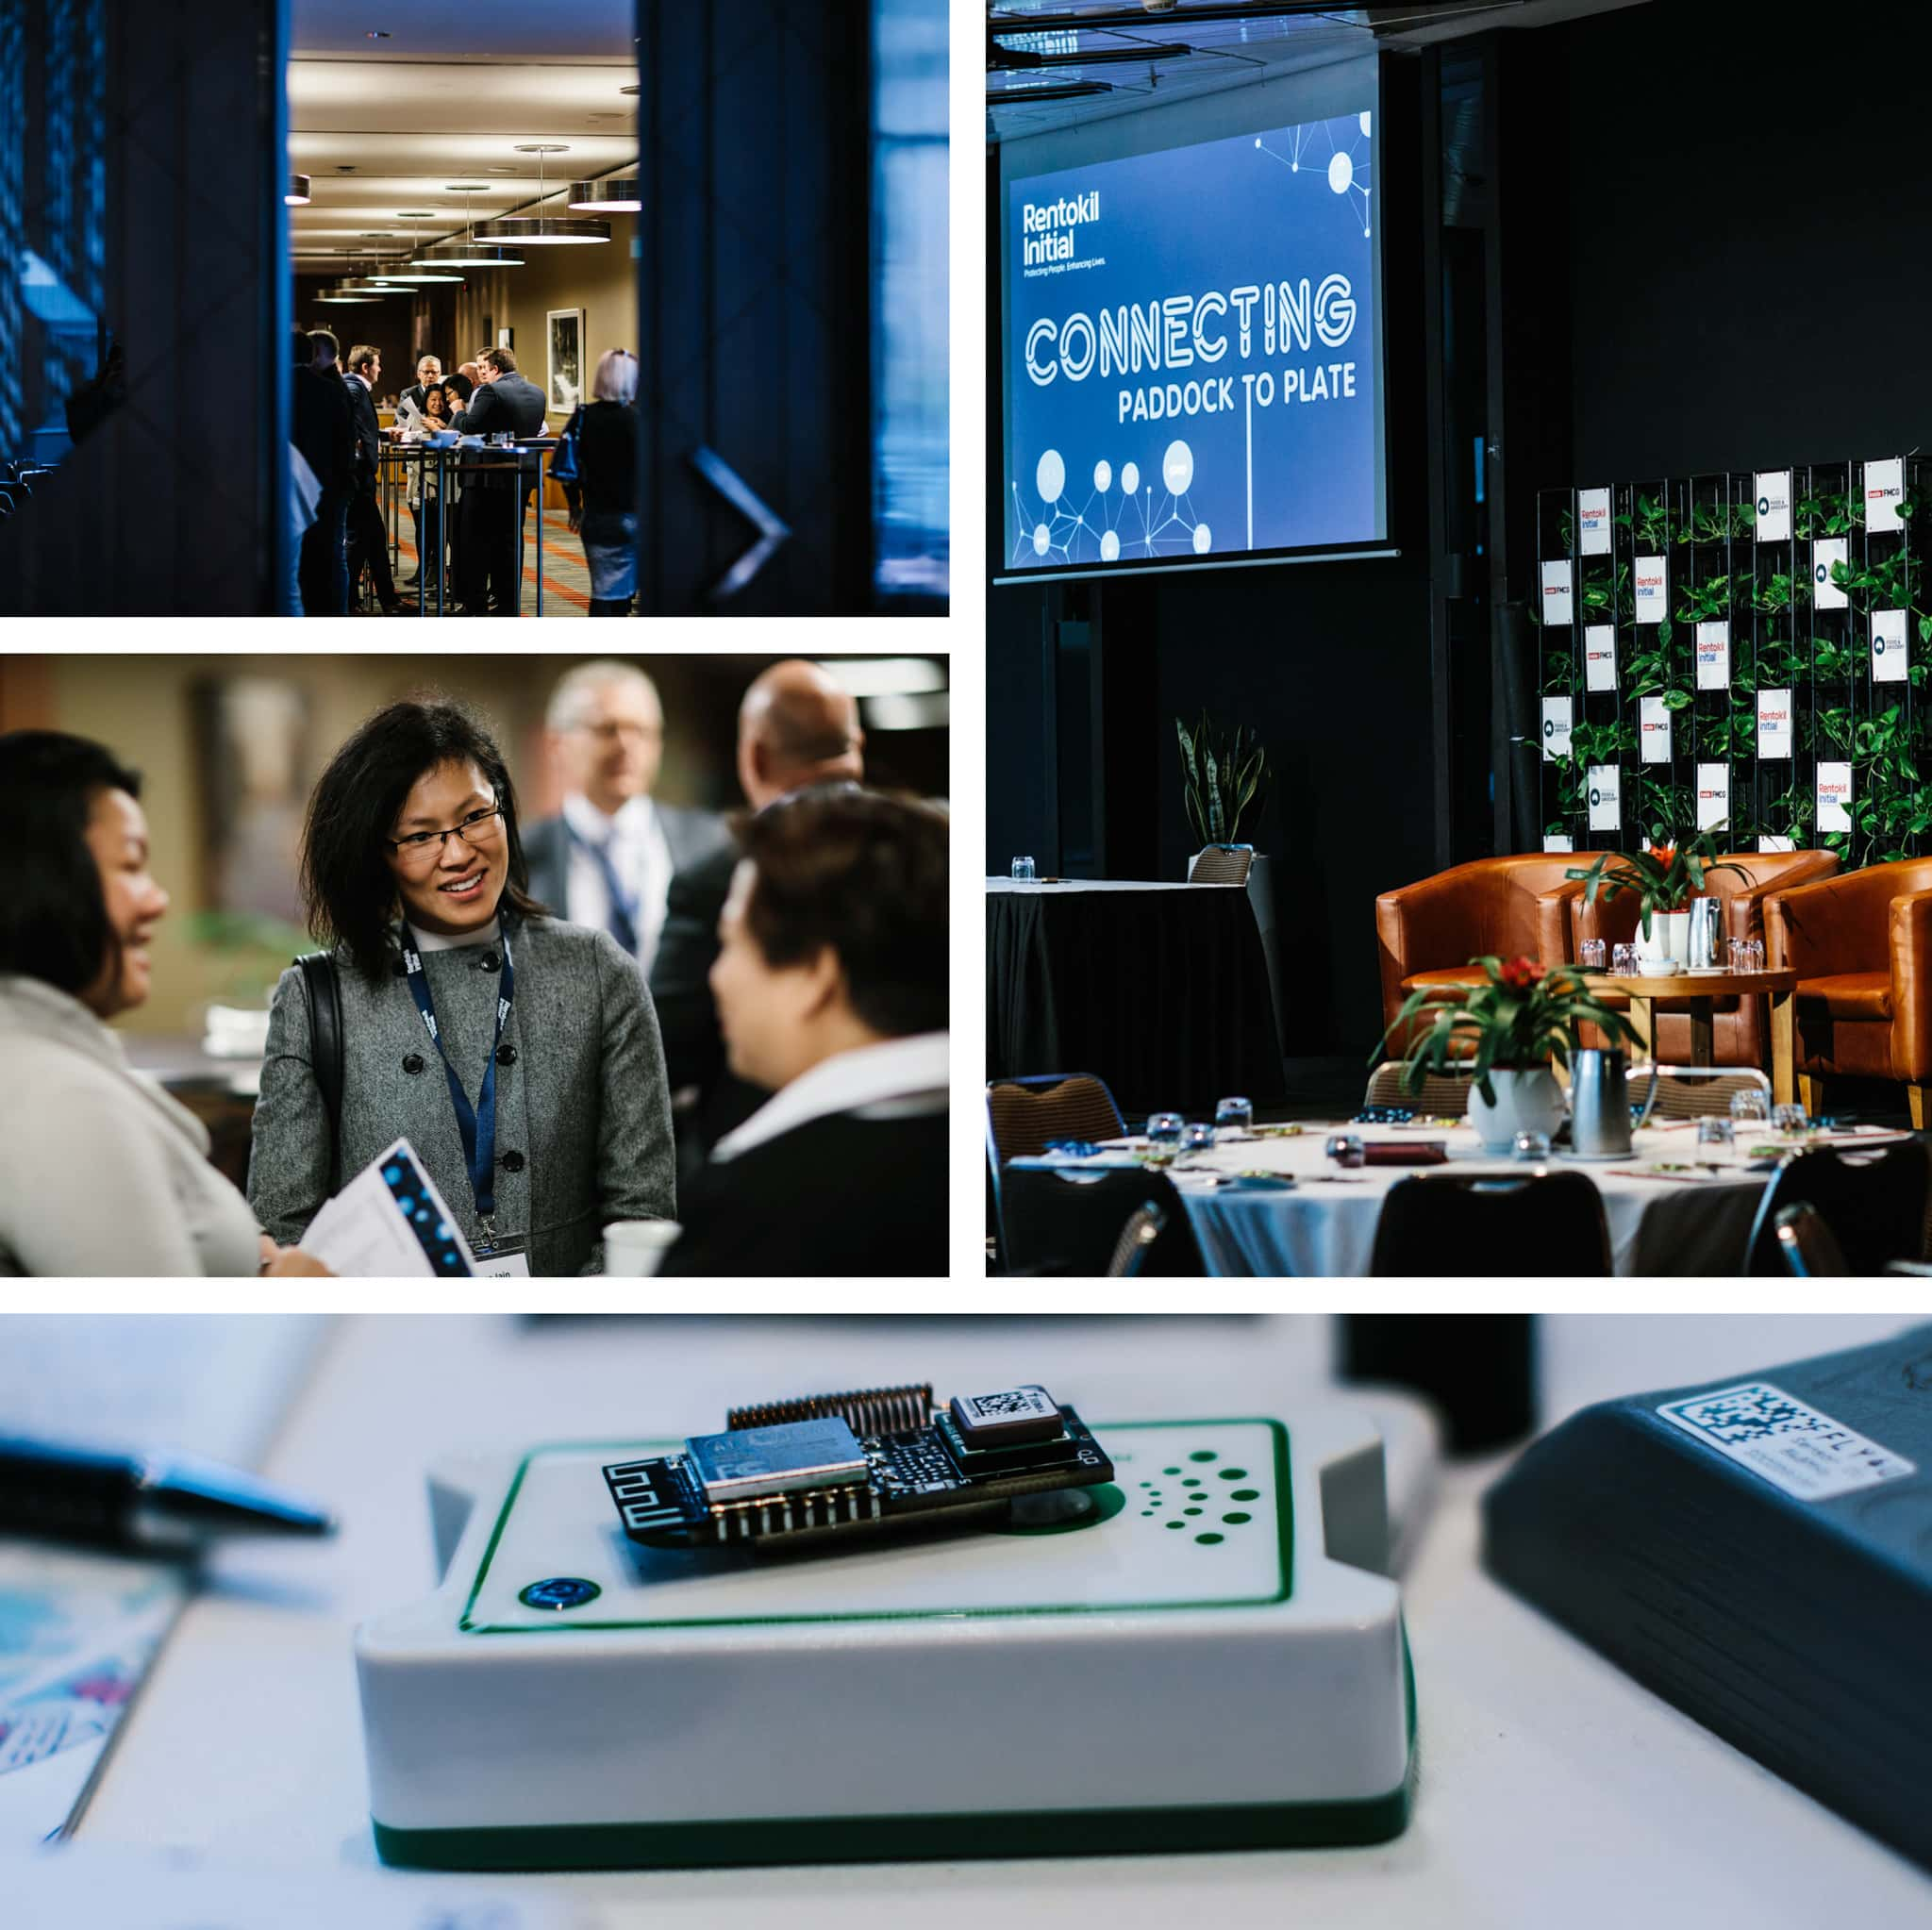 Internet of Things - Conference photos in Melbourne